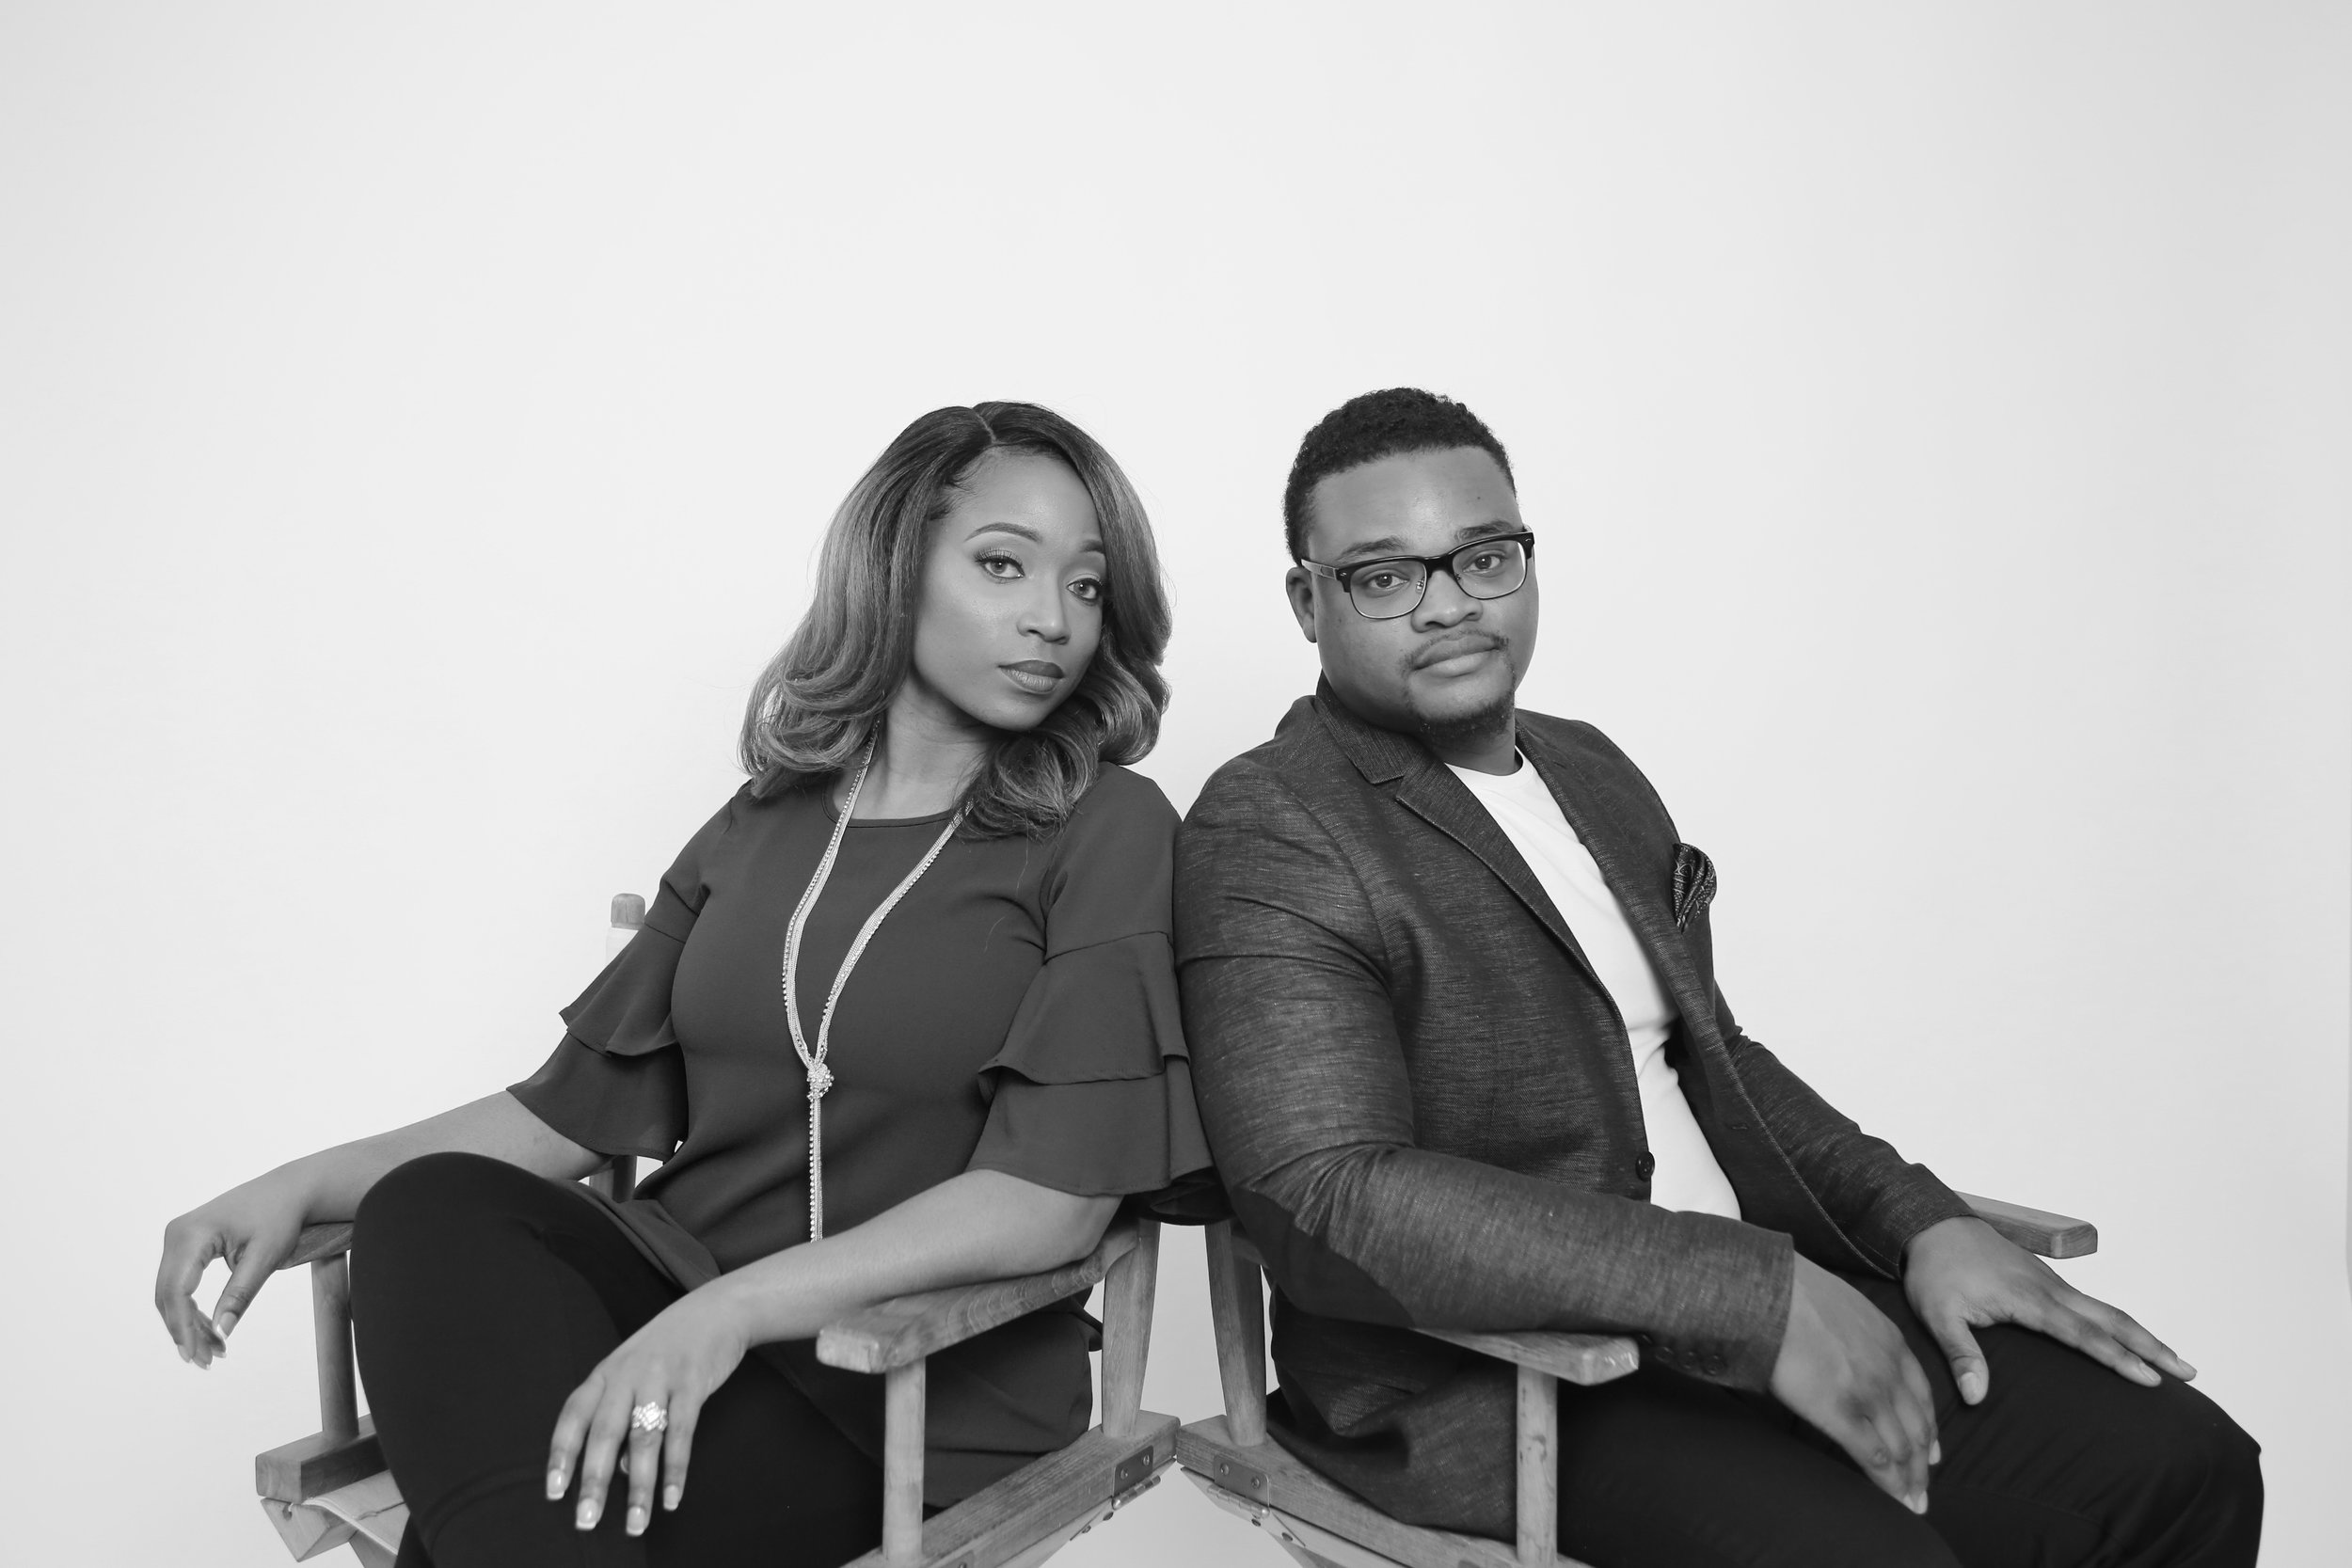 Hope Lives, Inc - Andrew and Tiffany have a passion for helping couples reach their fullest potential. Hope Lives is a non-profit organization, which provides resources that will equip, encourage and empower couples to build strong marriages.